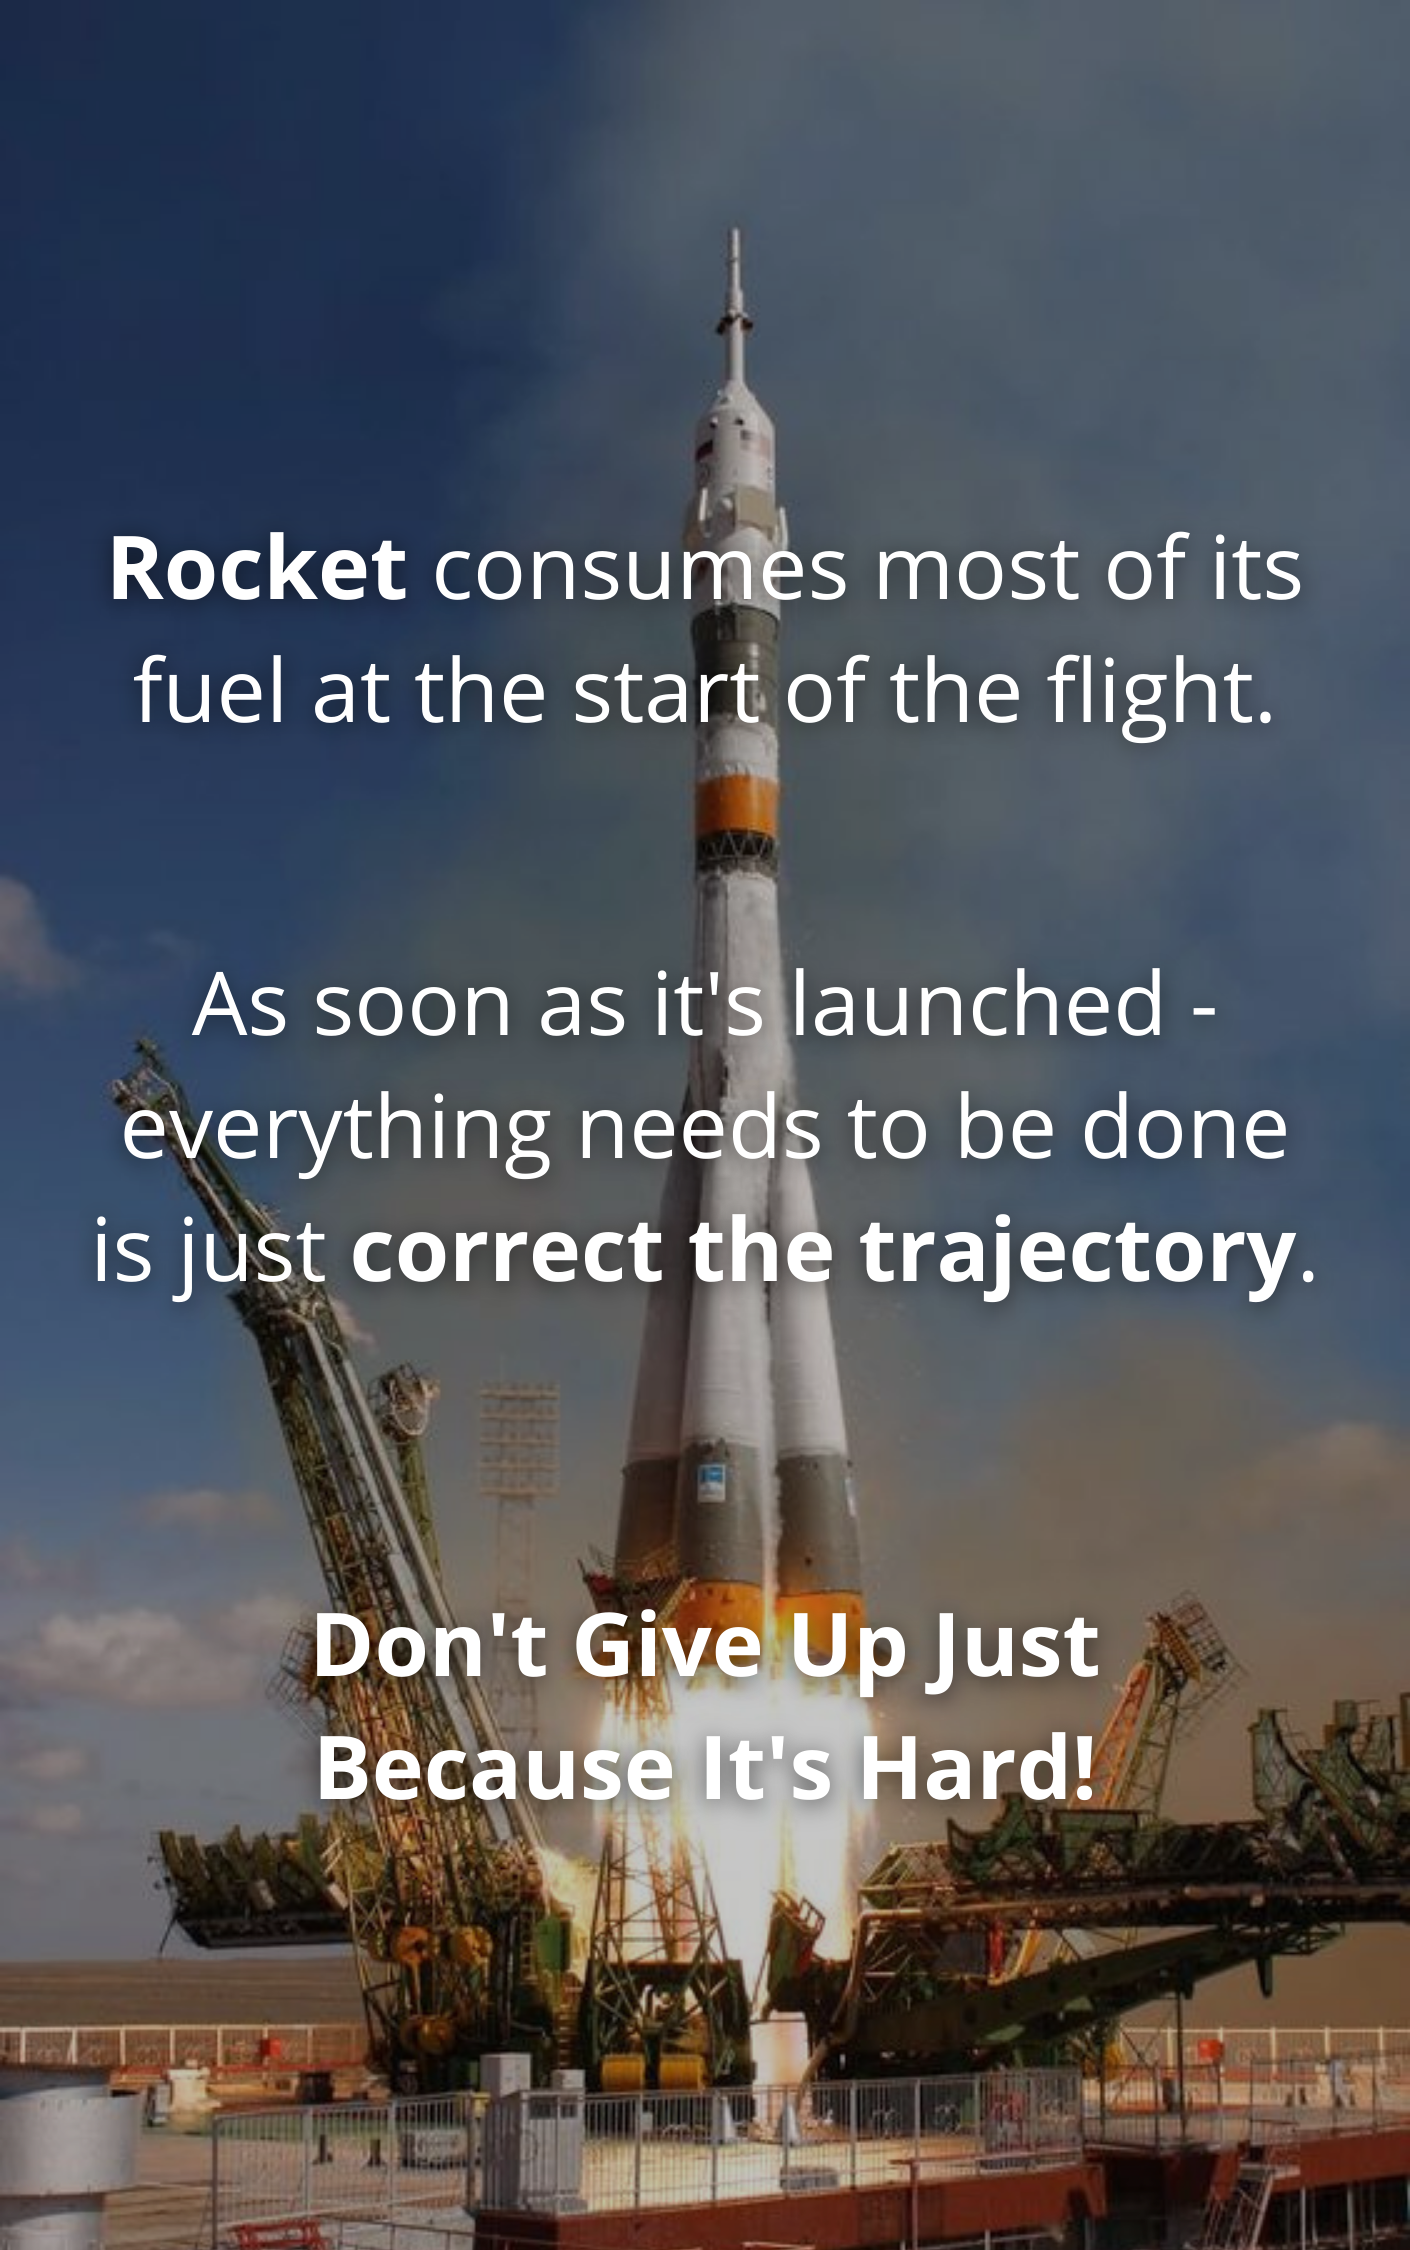 [Image] Let you reason and goals become your Rocket Fuel. And if it get's hard – remember that the start is always the hardest! But if you have enough fuel, if your goal and reason are meaningful enough – you will get there! 🚀